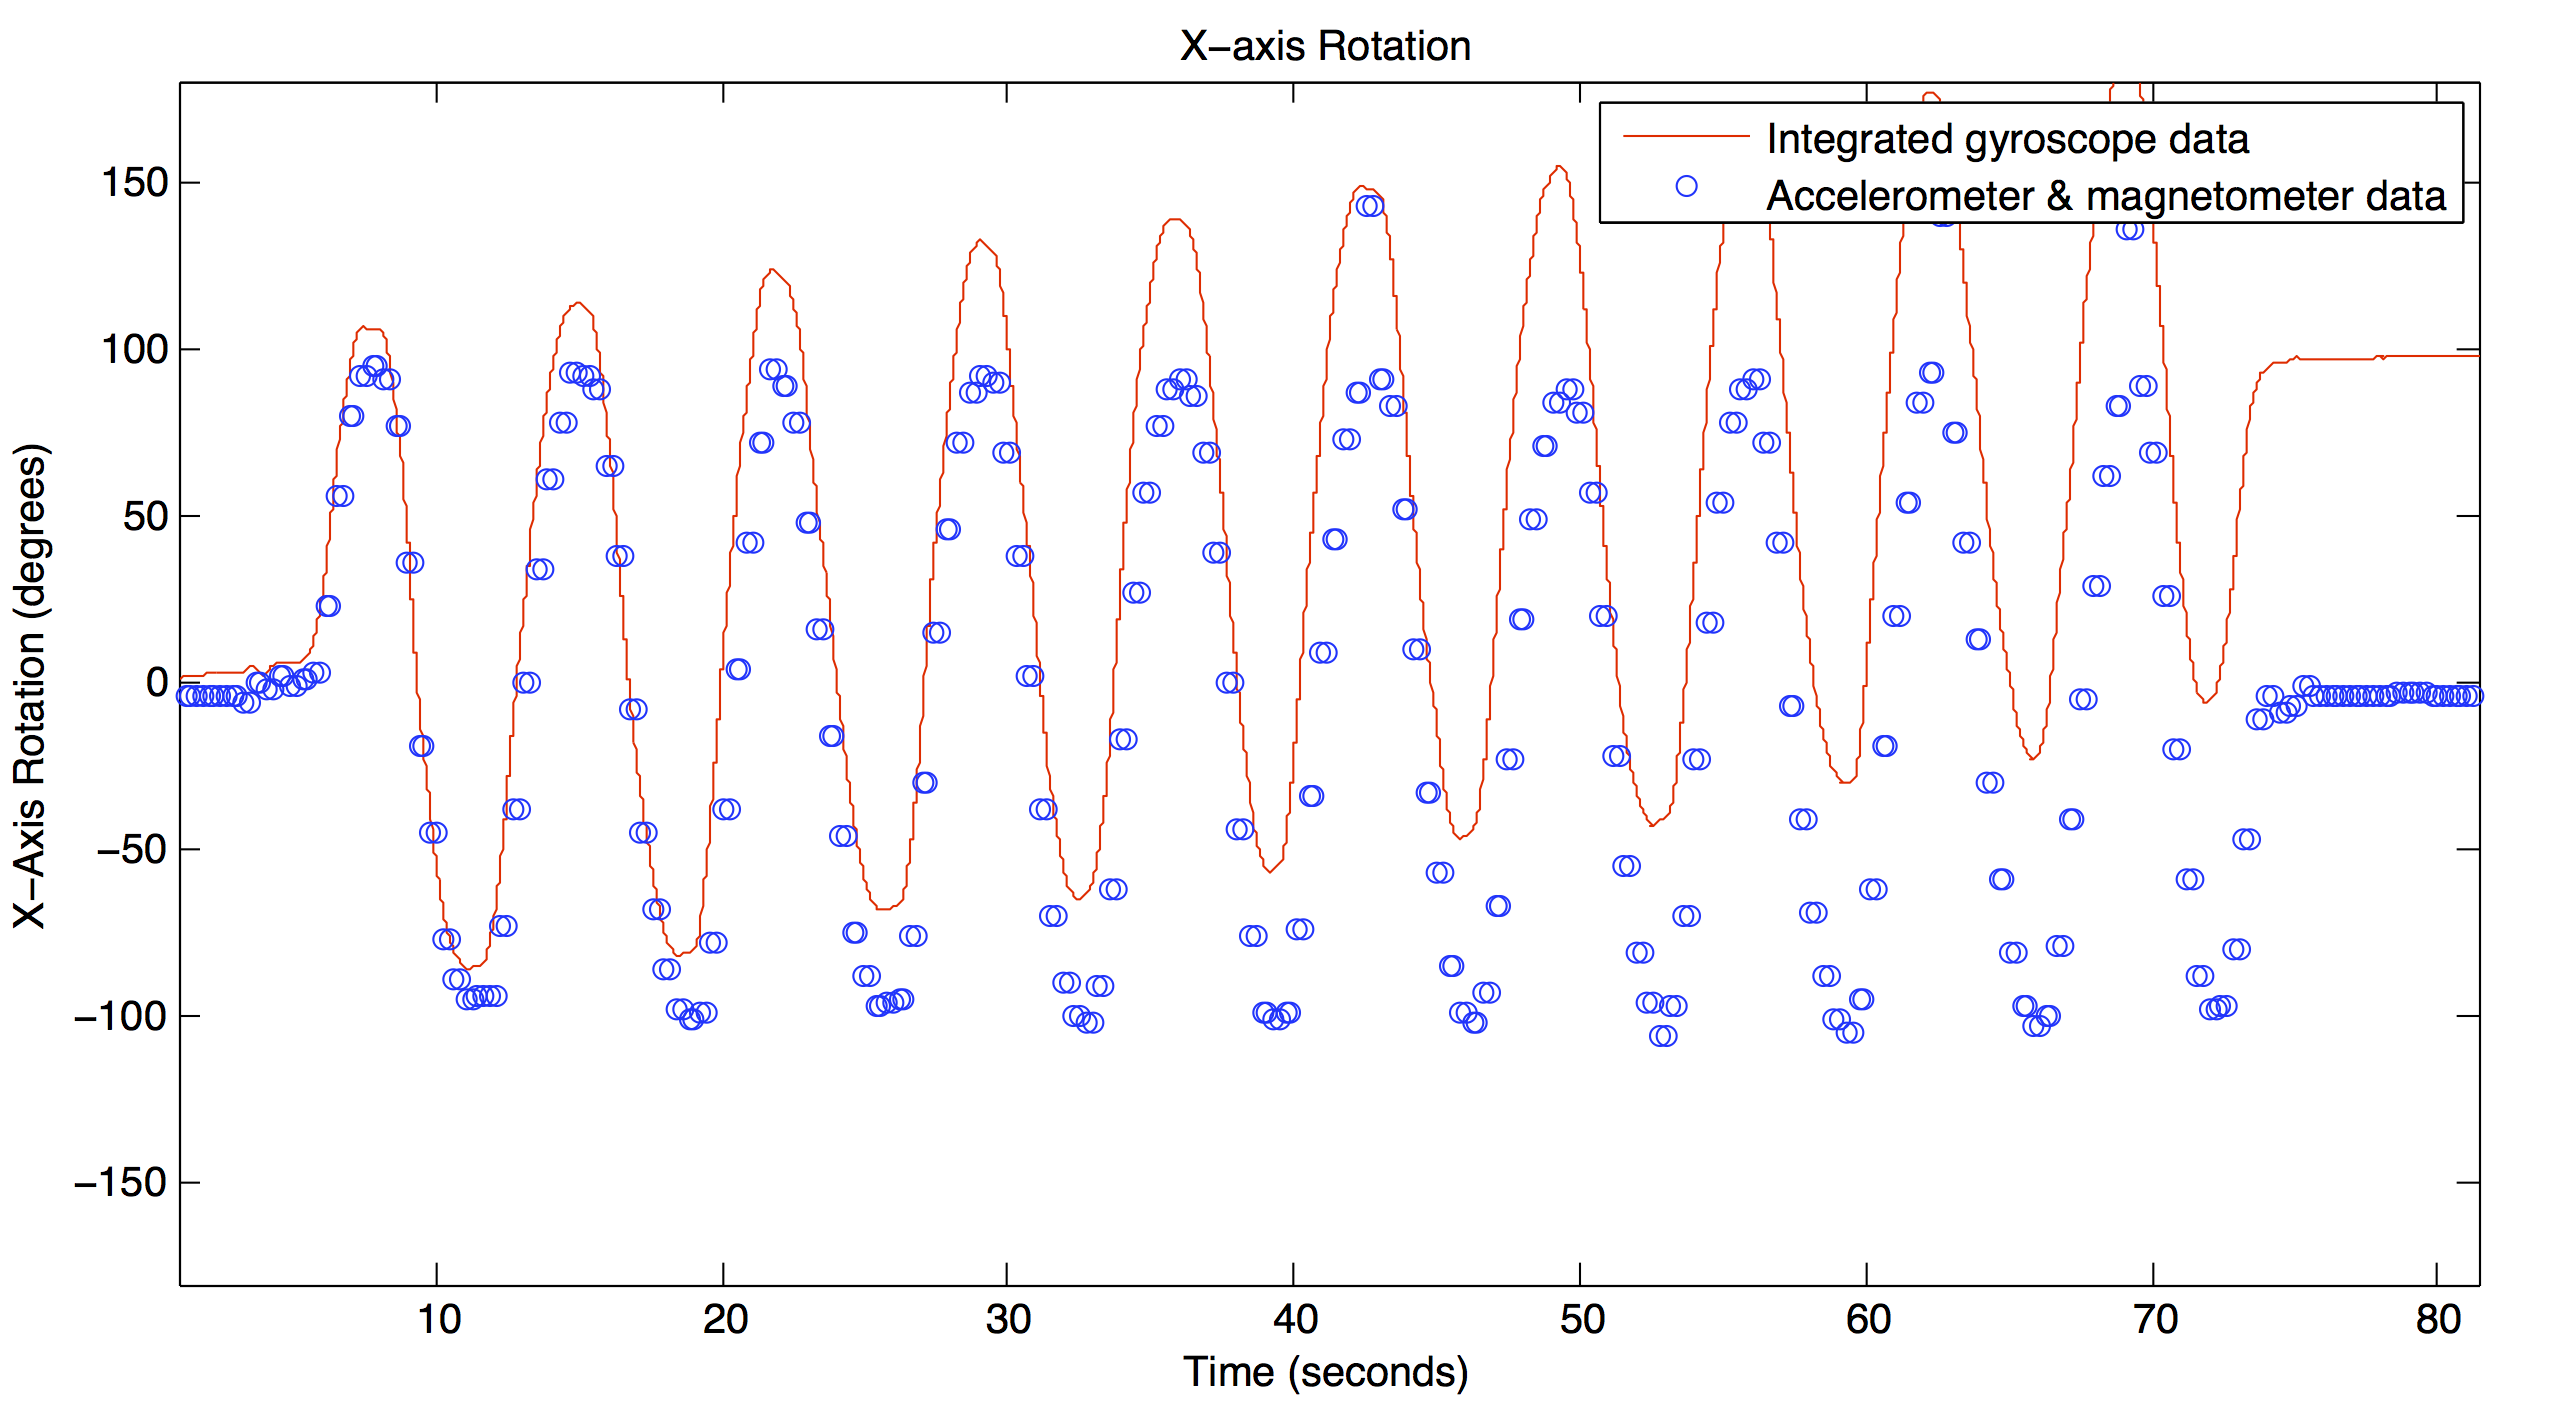 Imu Sensor Fusion Joseph Malloch Integrated Magnetic Field Temperature Compensation Circuit Plot Showing The Drift Of Gyroscope Data Due To Misestimated Or Changing Bias While